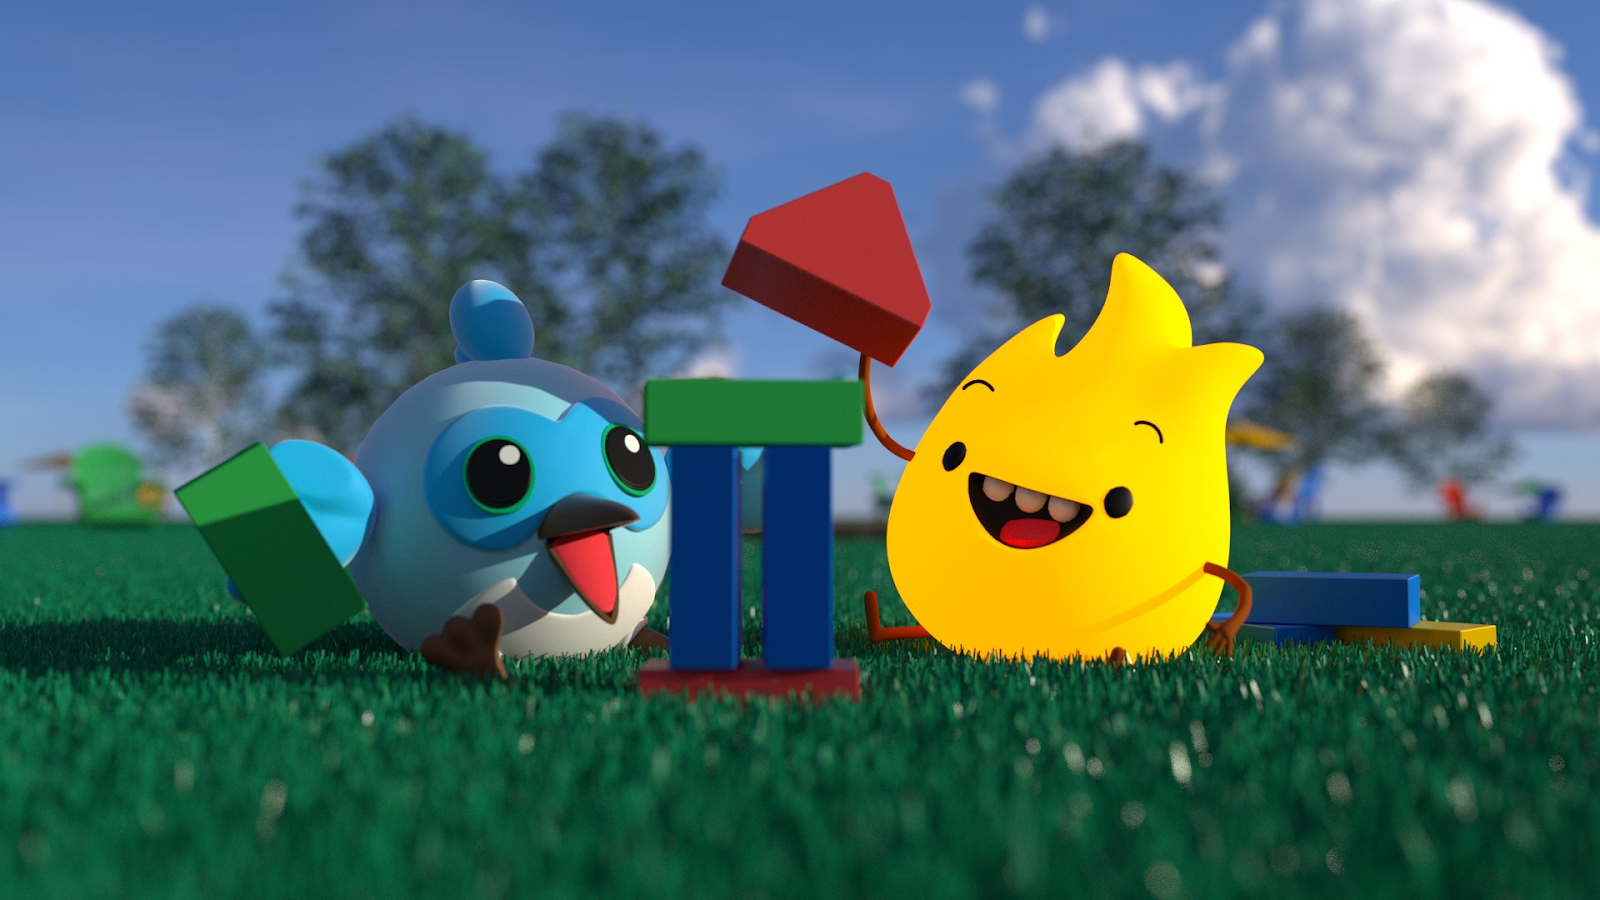 Animation of Sparky and Dash playing with blocks